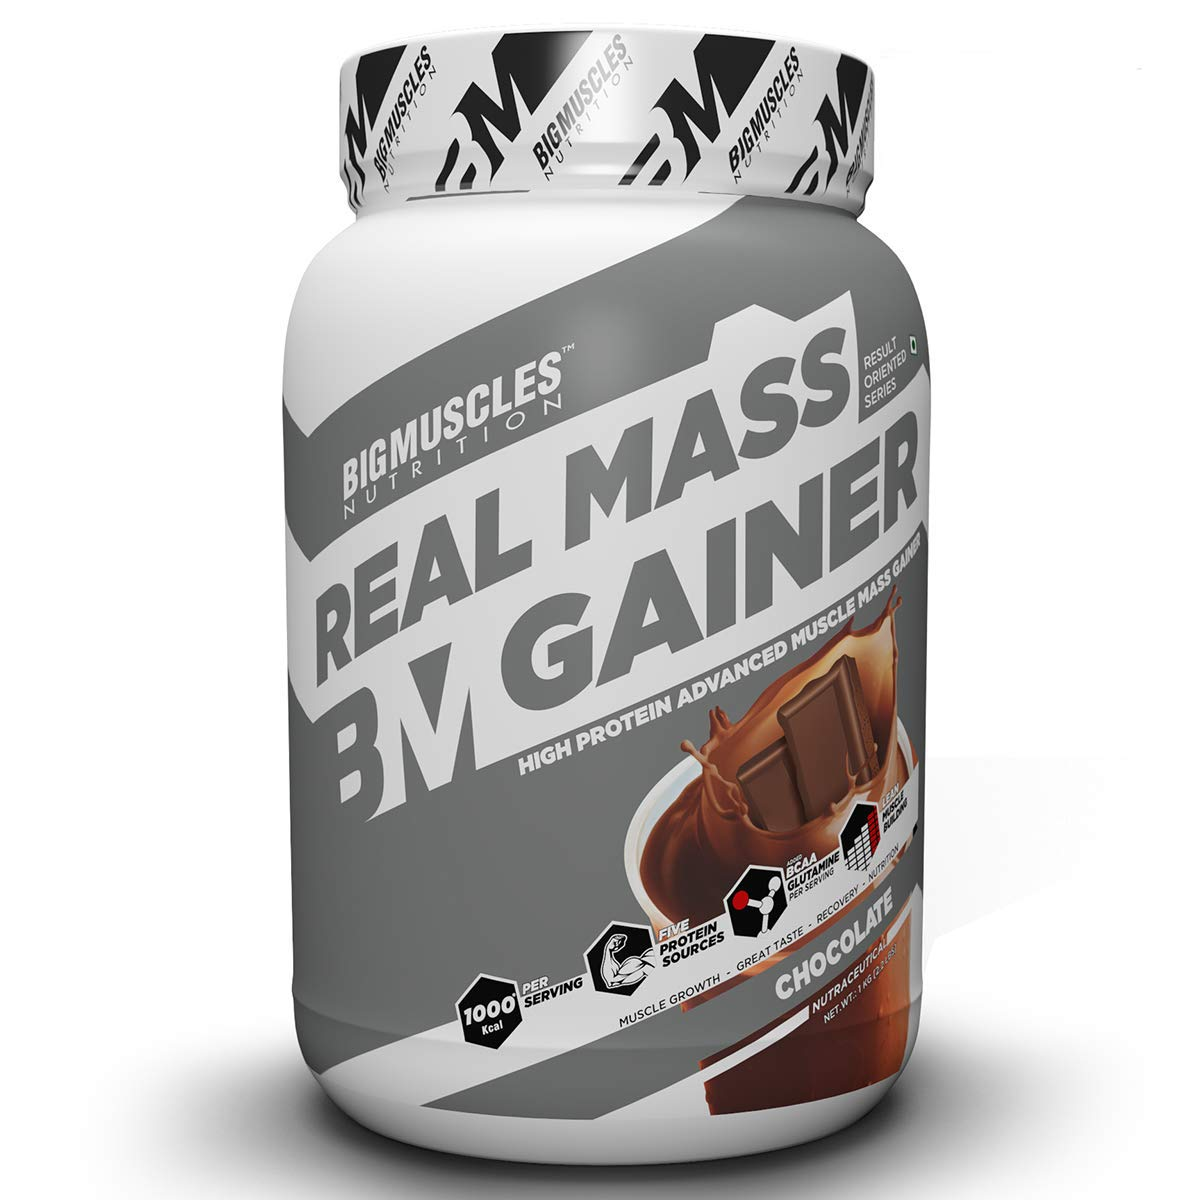 Bigmuscles Nutrition Real Mass Gainer [1Kg, Chocolate], Lean